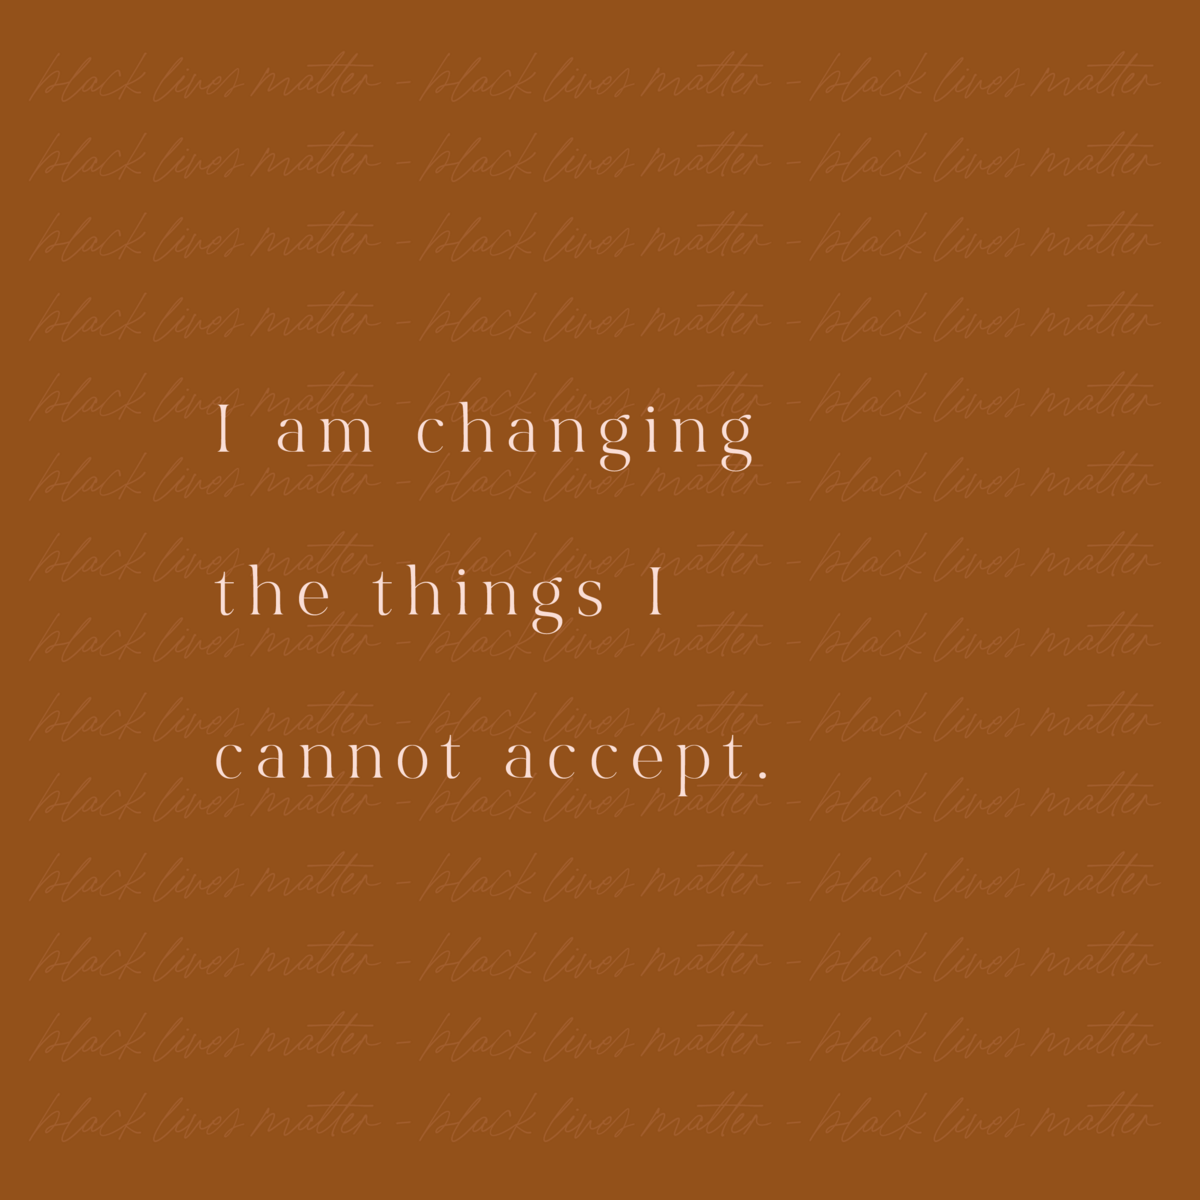 I am changing the things I cannot accept-01